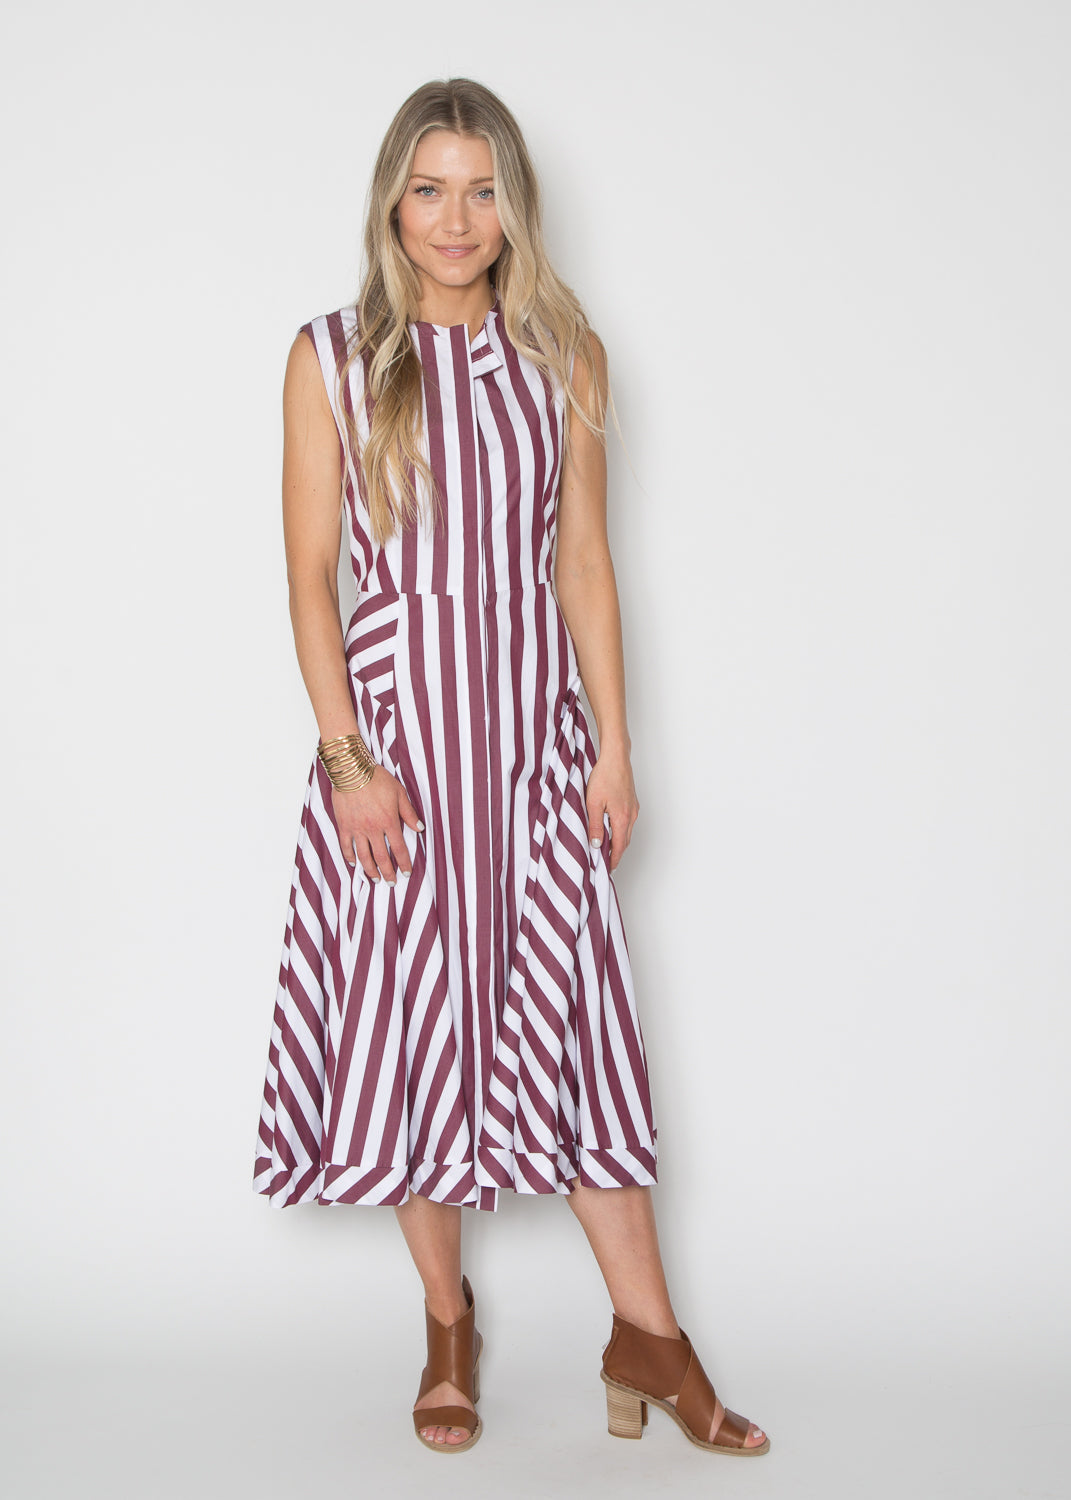 TELA Striped Panel Dress